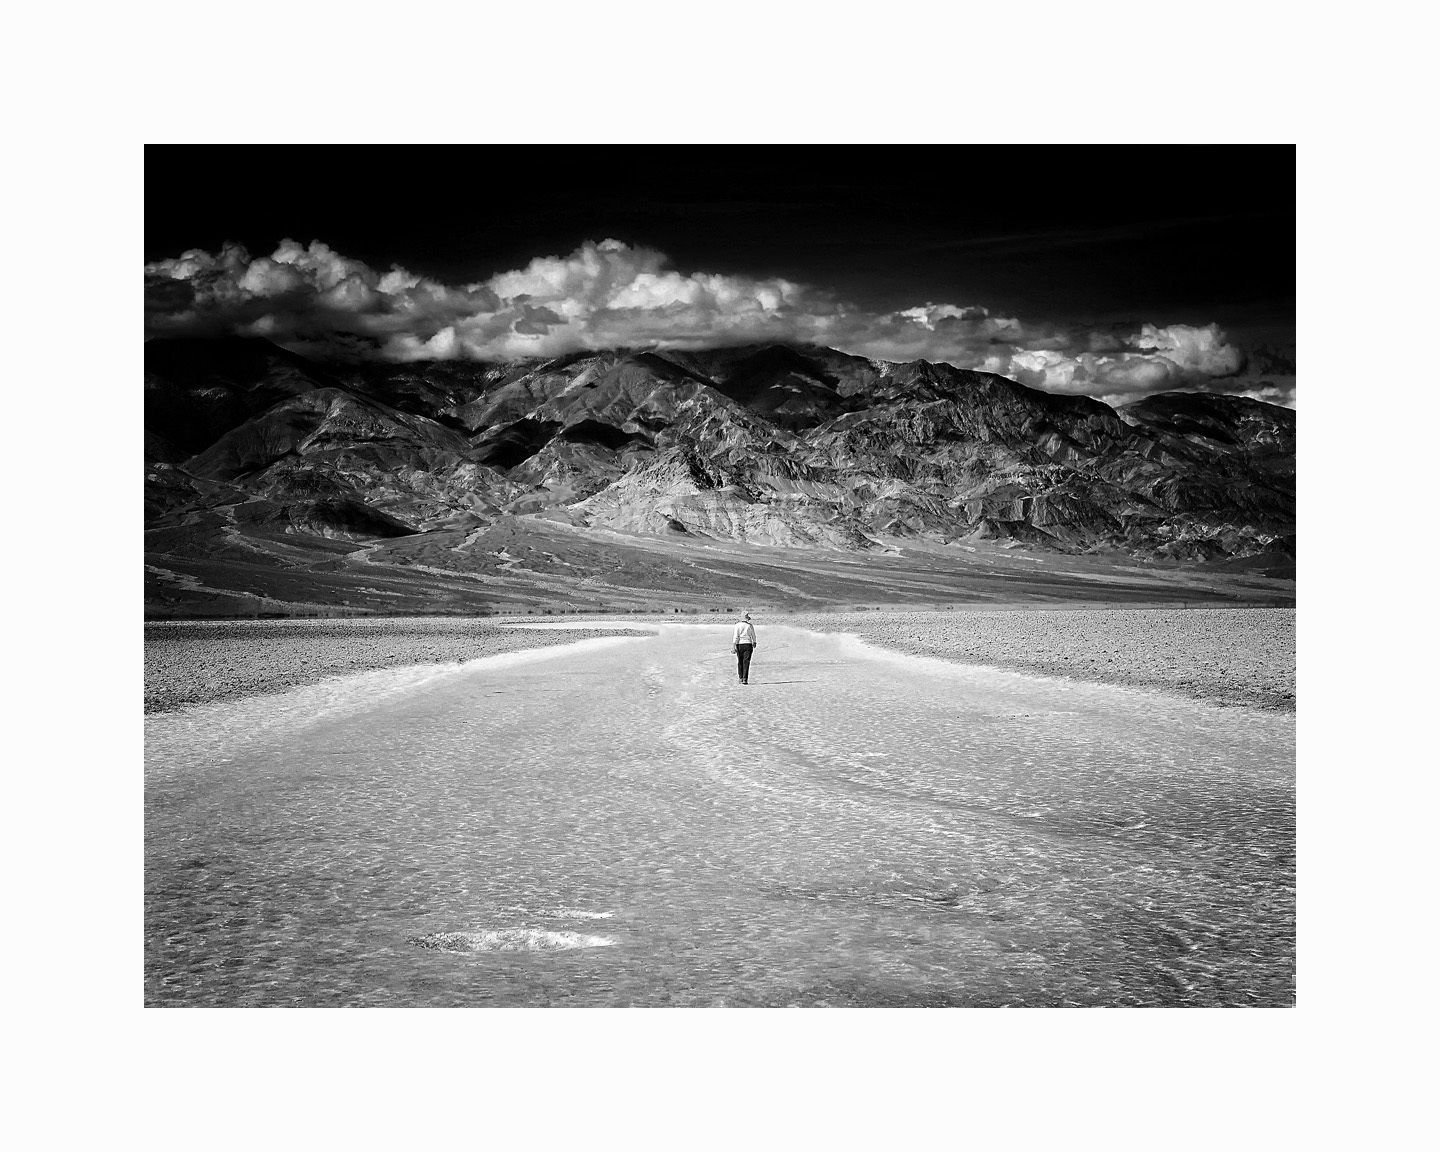 1badwater_0766_2_16x20_b_w_surreal